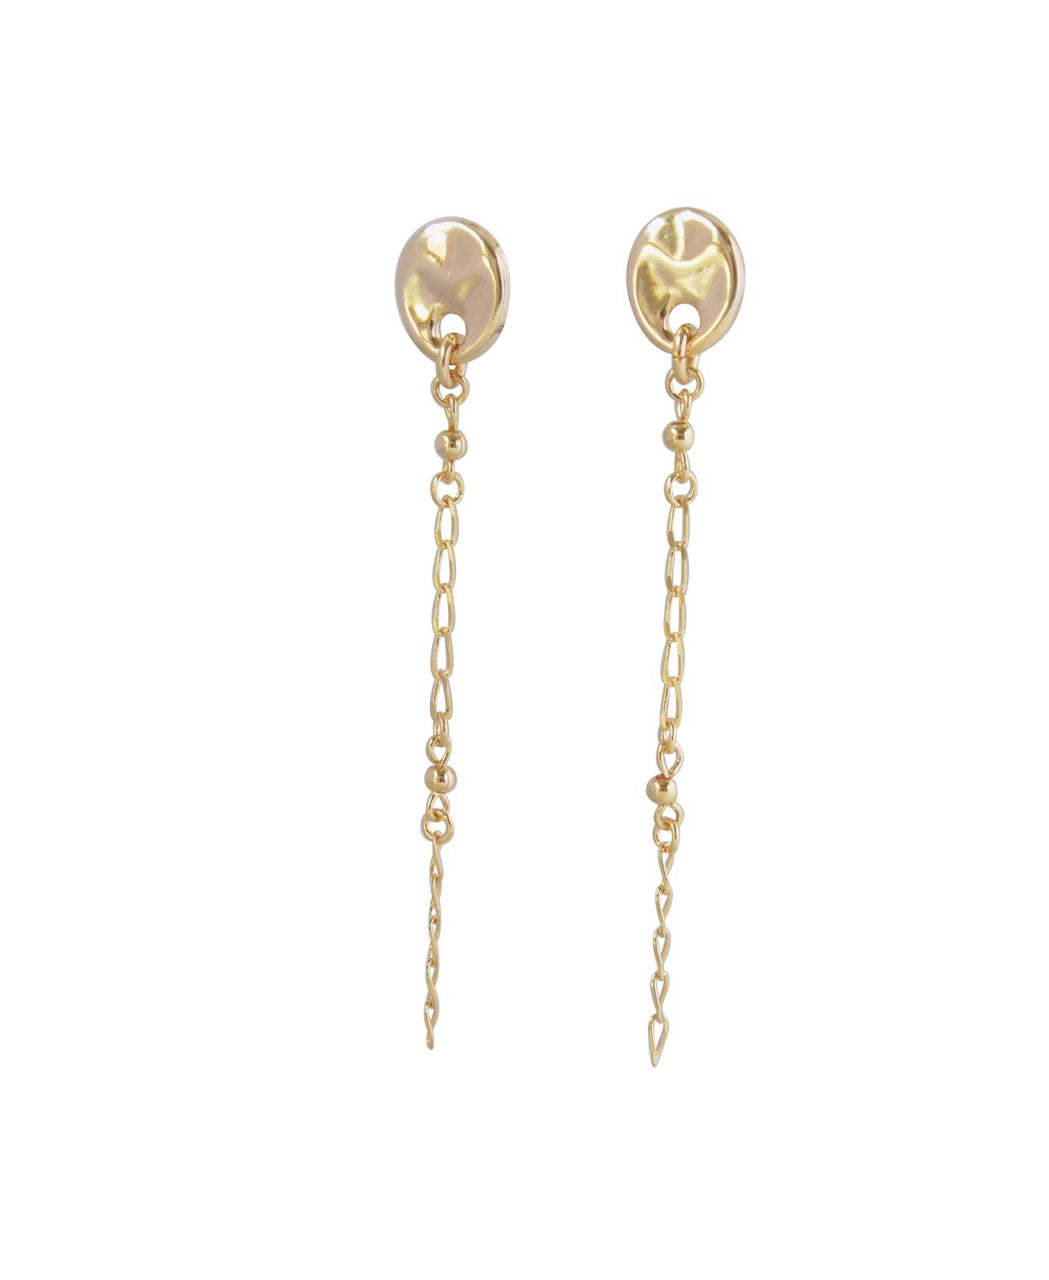 Vidda Mia Earrings